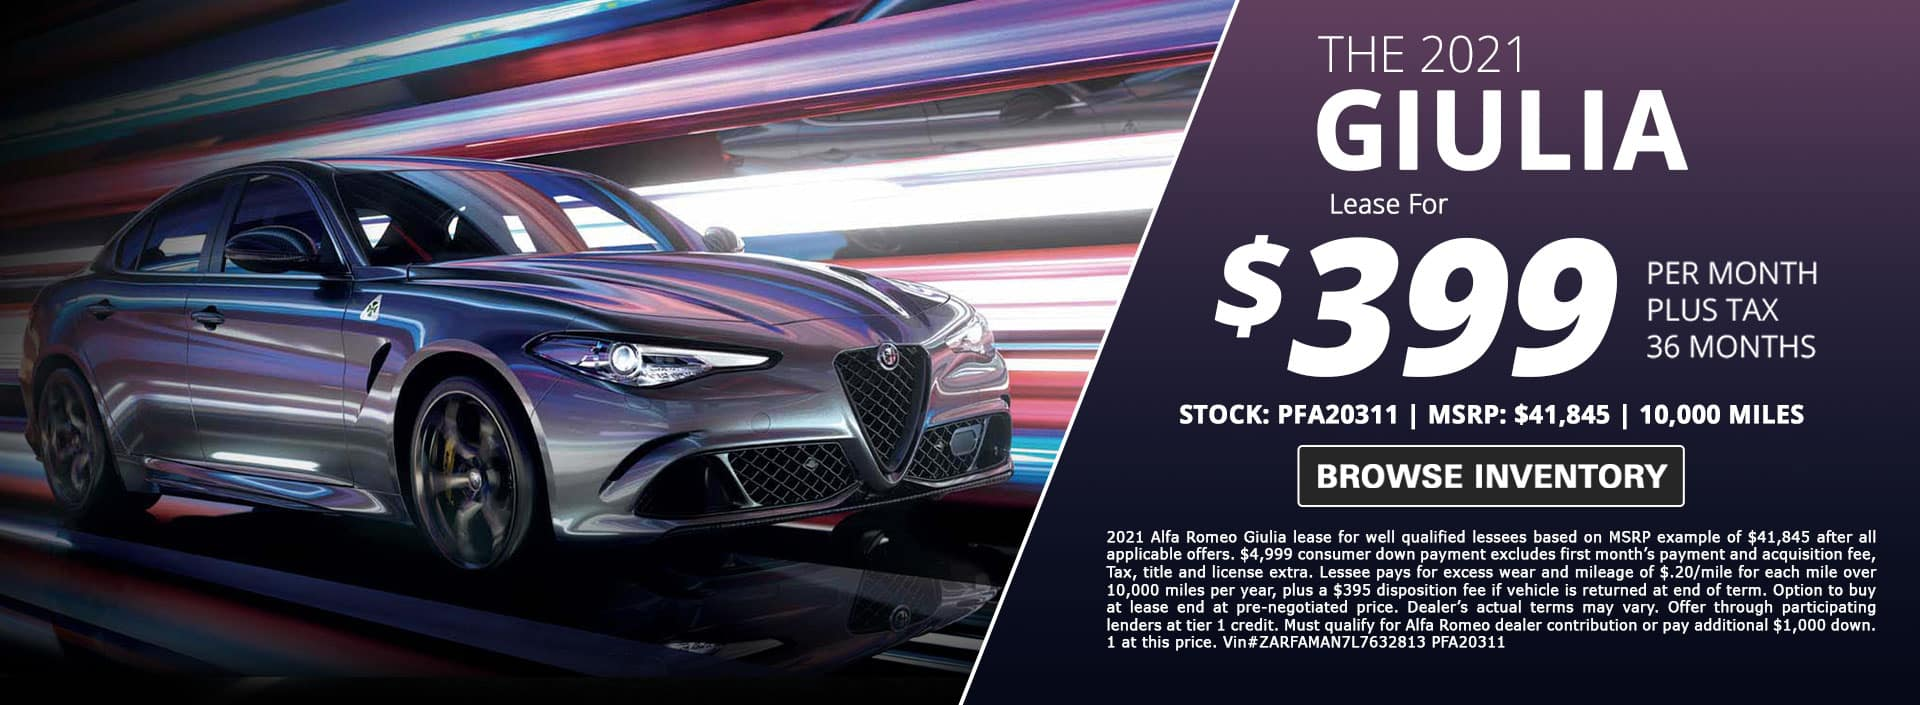 new alfa romeo giulia lease special for sale in city of industry california